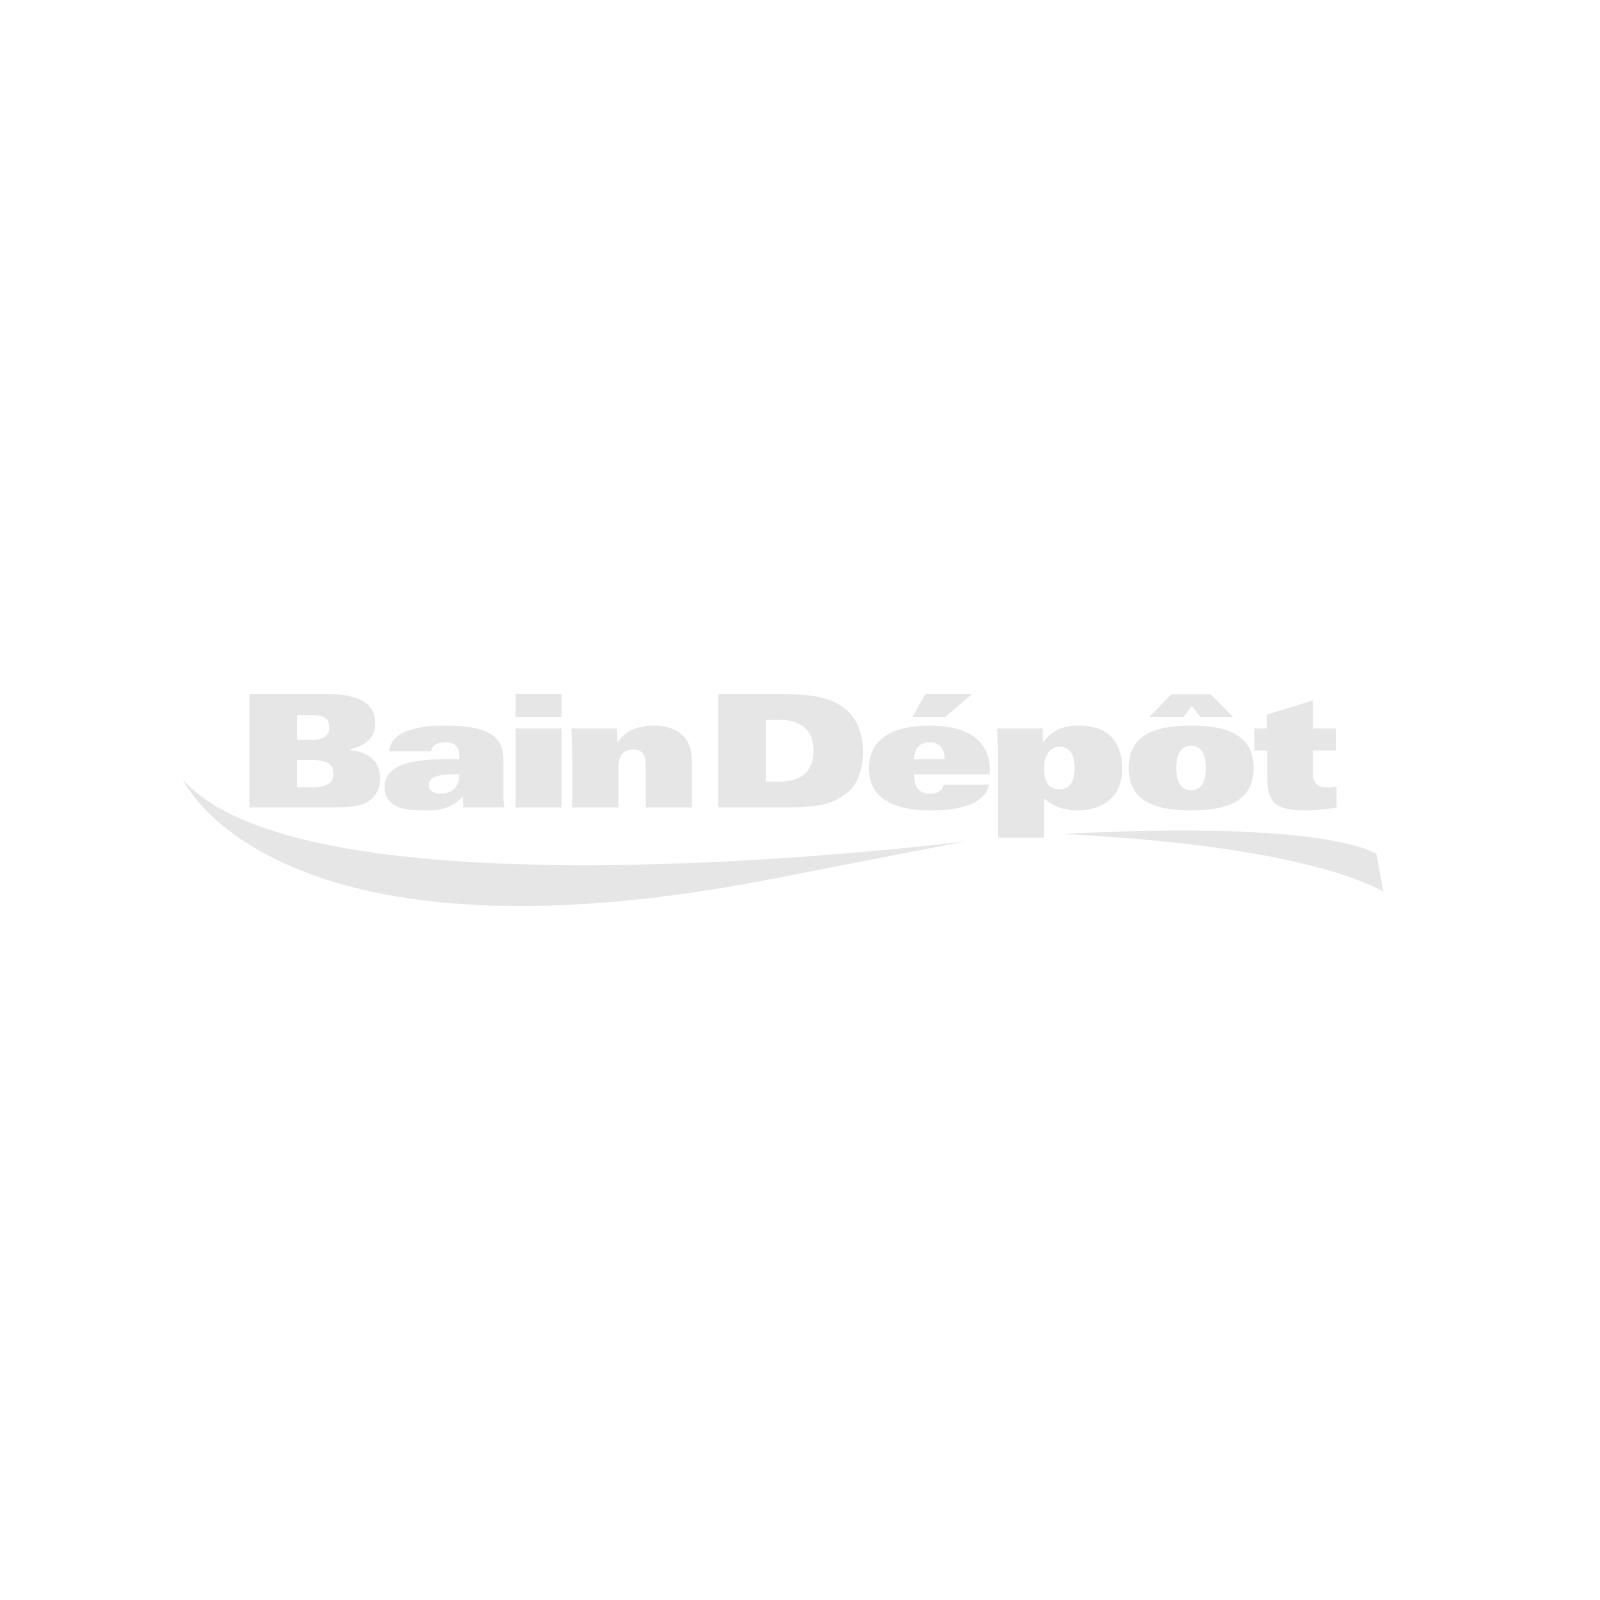 WARMUP - FOIL for carpet, laminate and wood floors covering 20 square feet